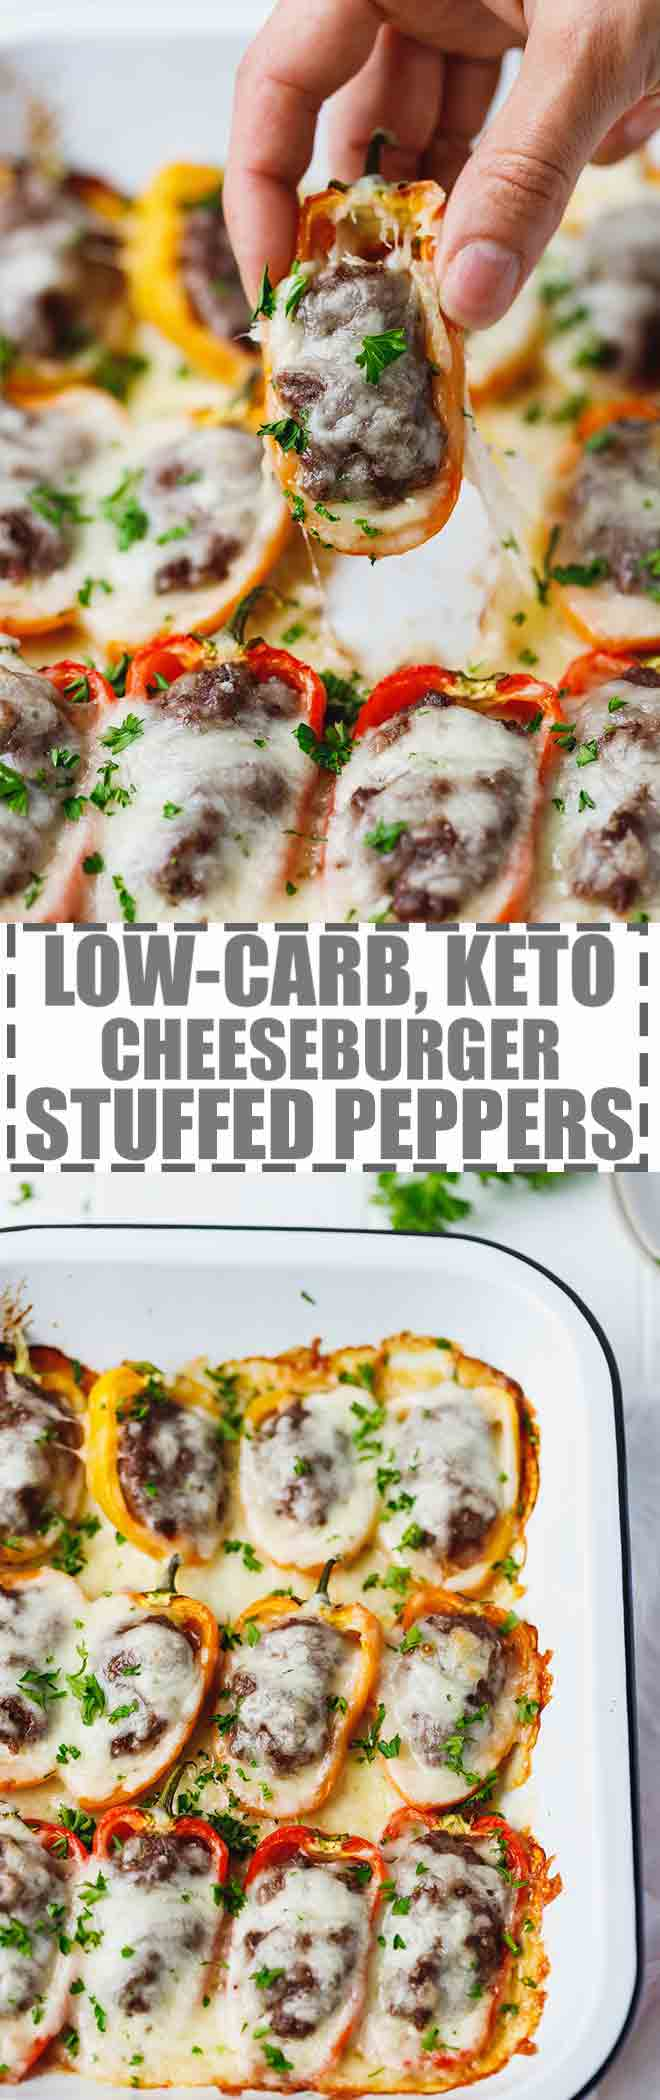 Low-Carb, Keto Cheeseburger Stuffed Peppers Recipe - colorful mini peppers, cut in half lengthwise, stuffed with ground beef and topped with melty cheese. #KETO #LOWCARB #CHEESEBURGER #STUFFEDPEPPERS #GLUTENFREE